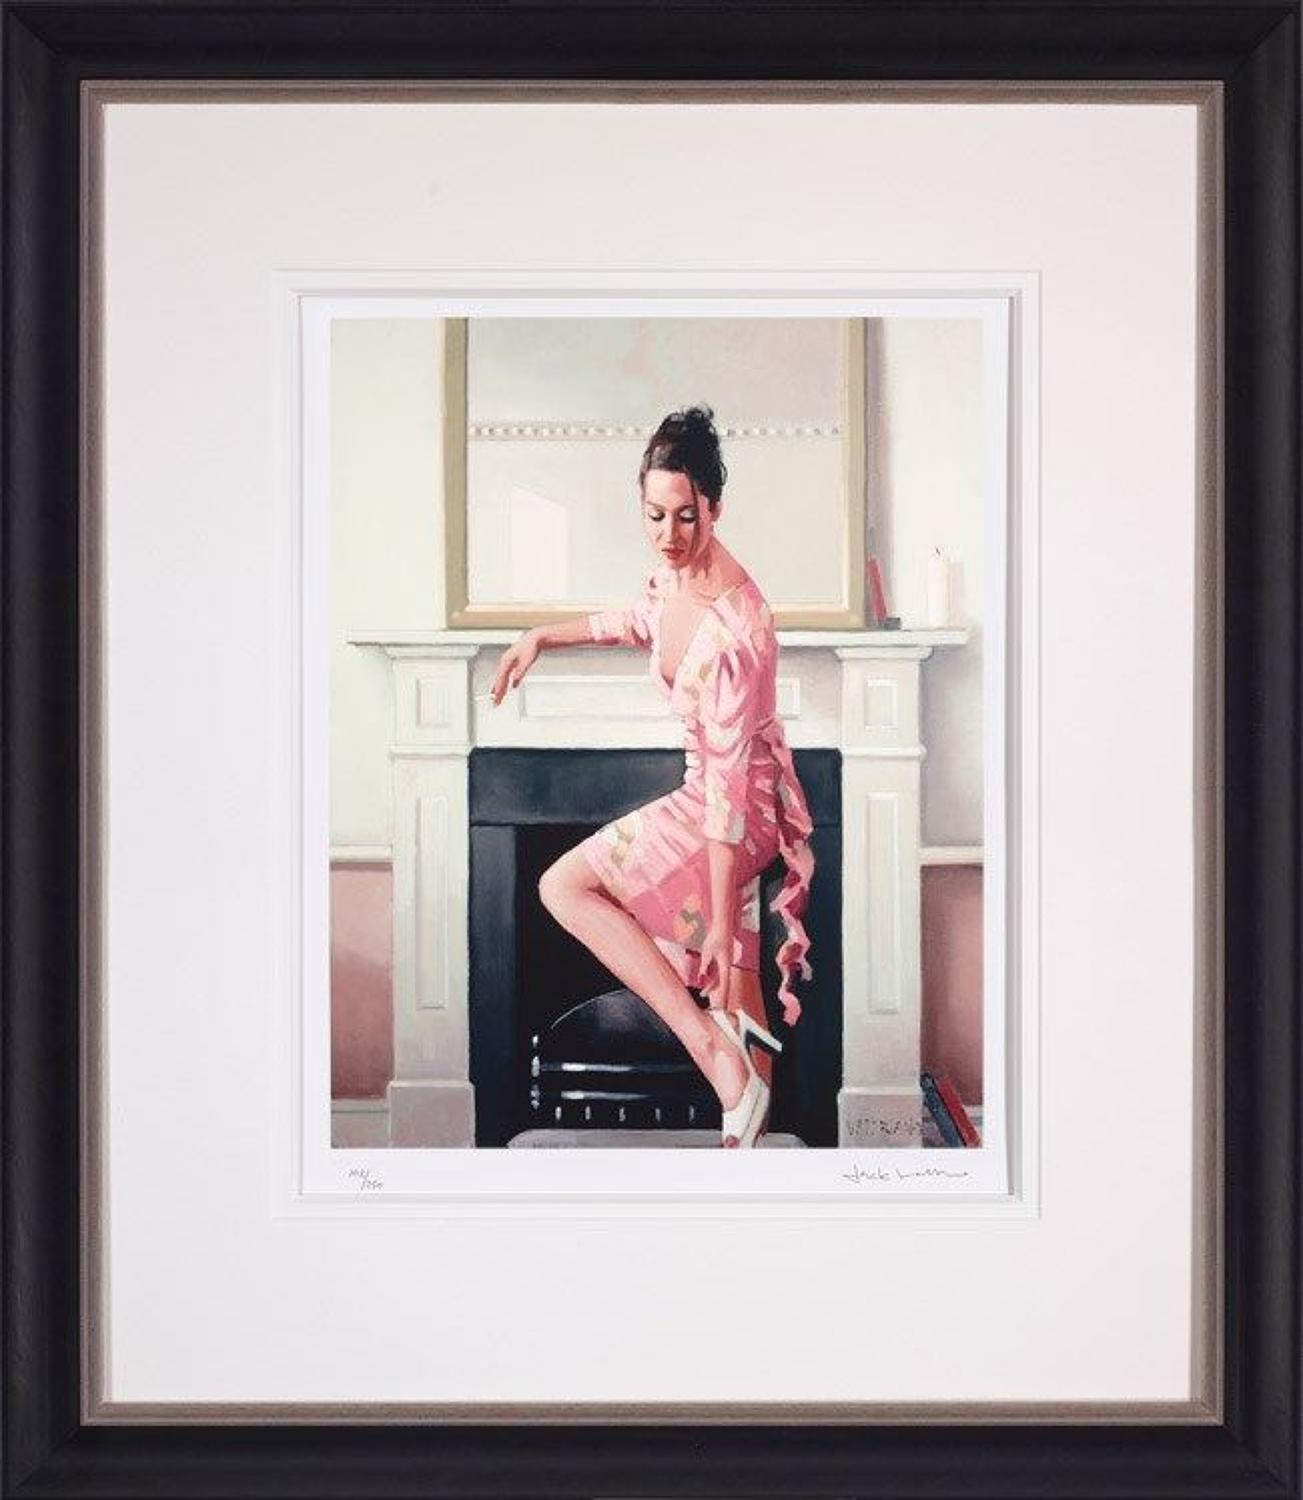 Jack Vettriano Models in Westwood Framed Art Print